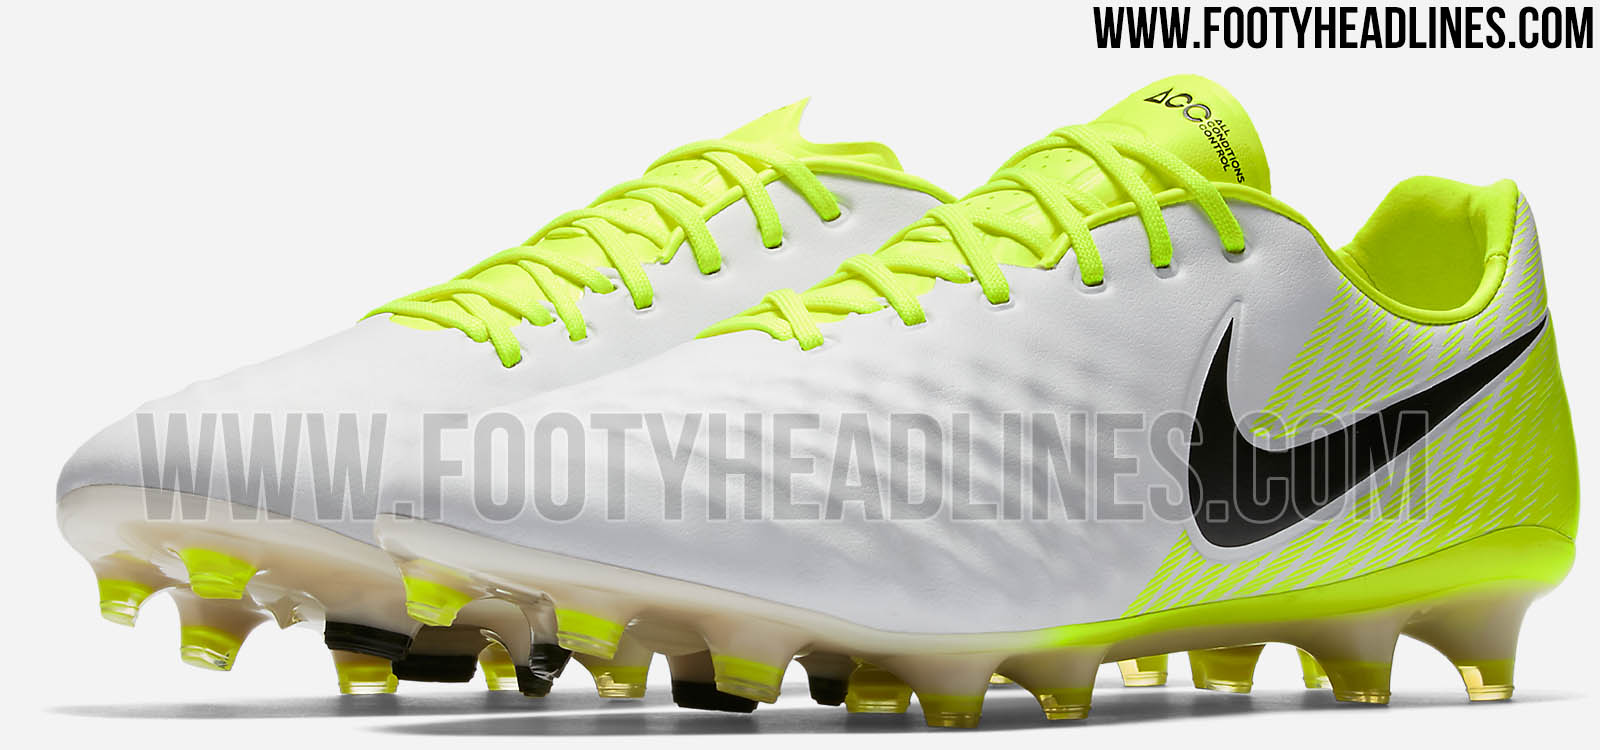 bafdaee5917 ... these new Nike Magista Opus II cleats form part of the March 2017  Motion Blur pack and are the first to feature the brand-new upper.